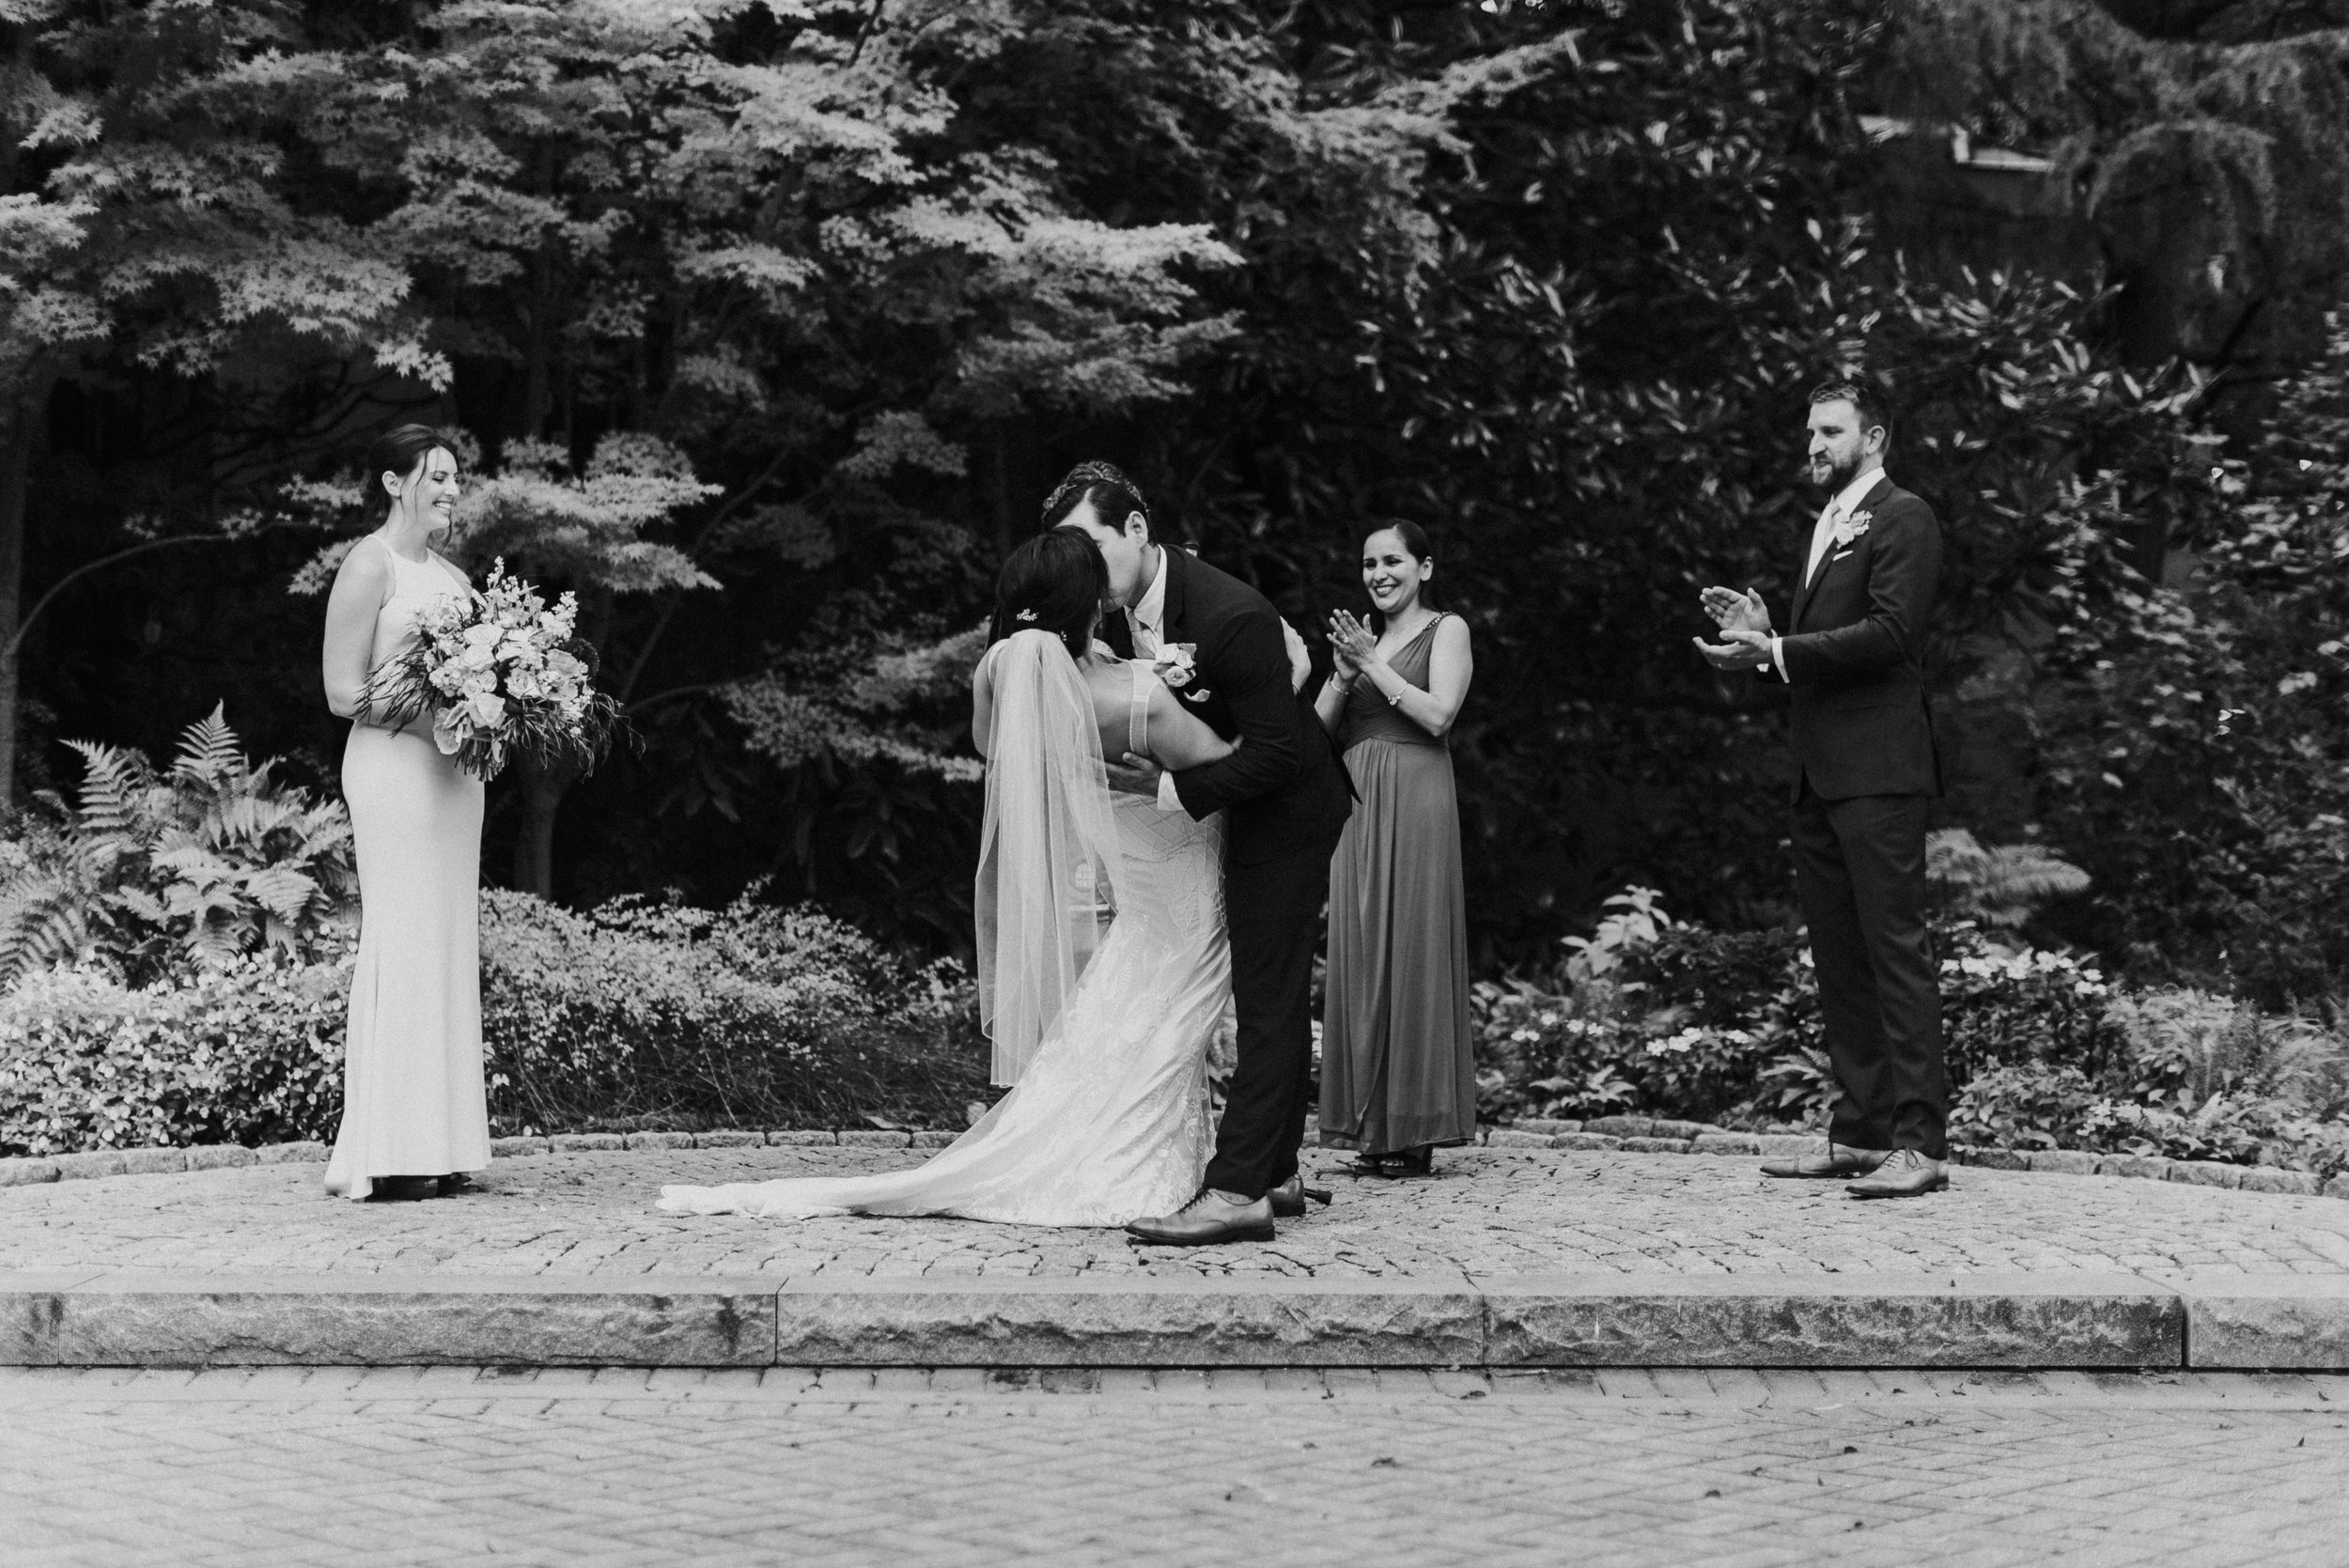 Bride and Groom kiss at wedding ceremony at The Trolley Barn